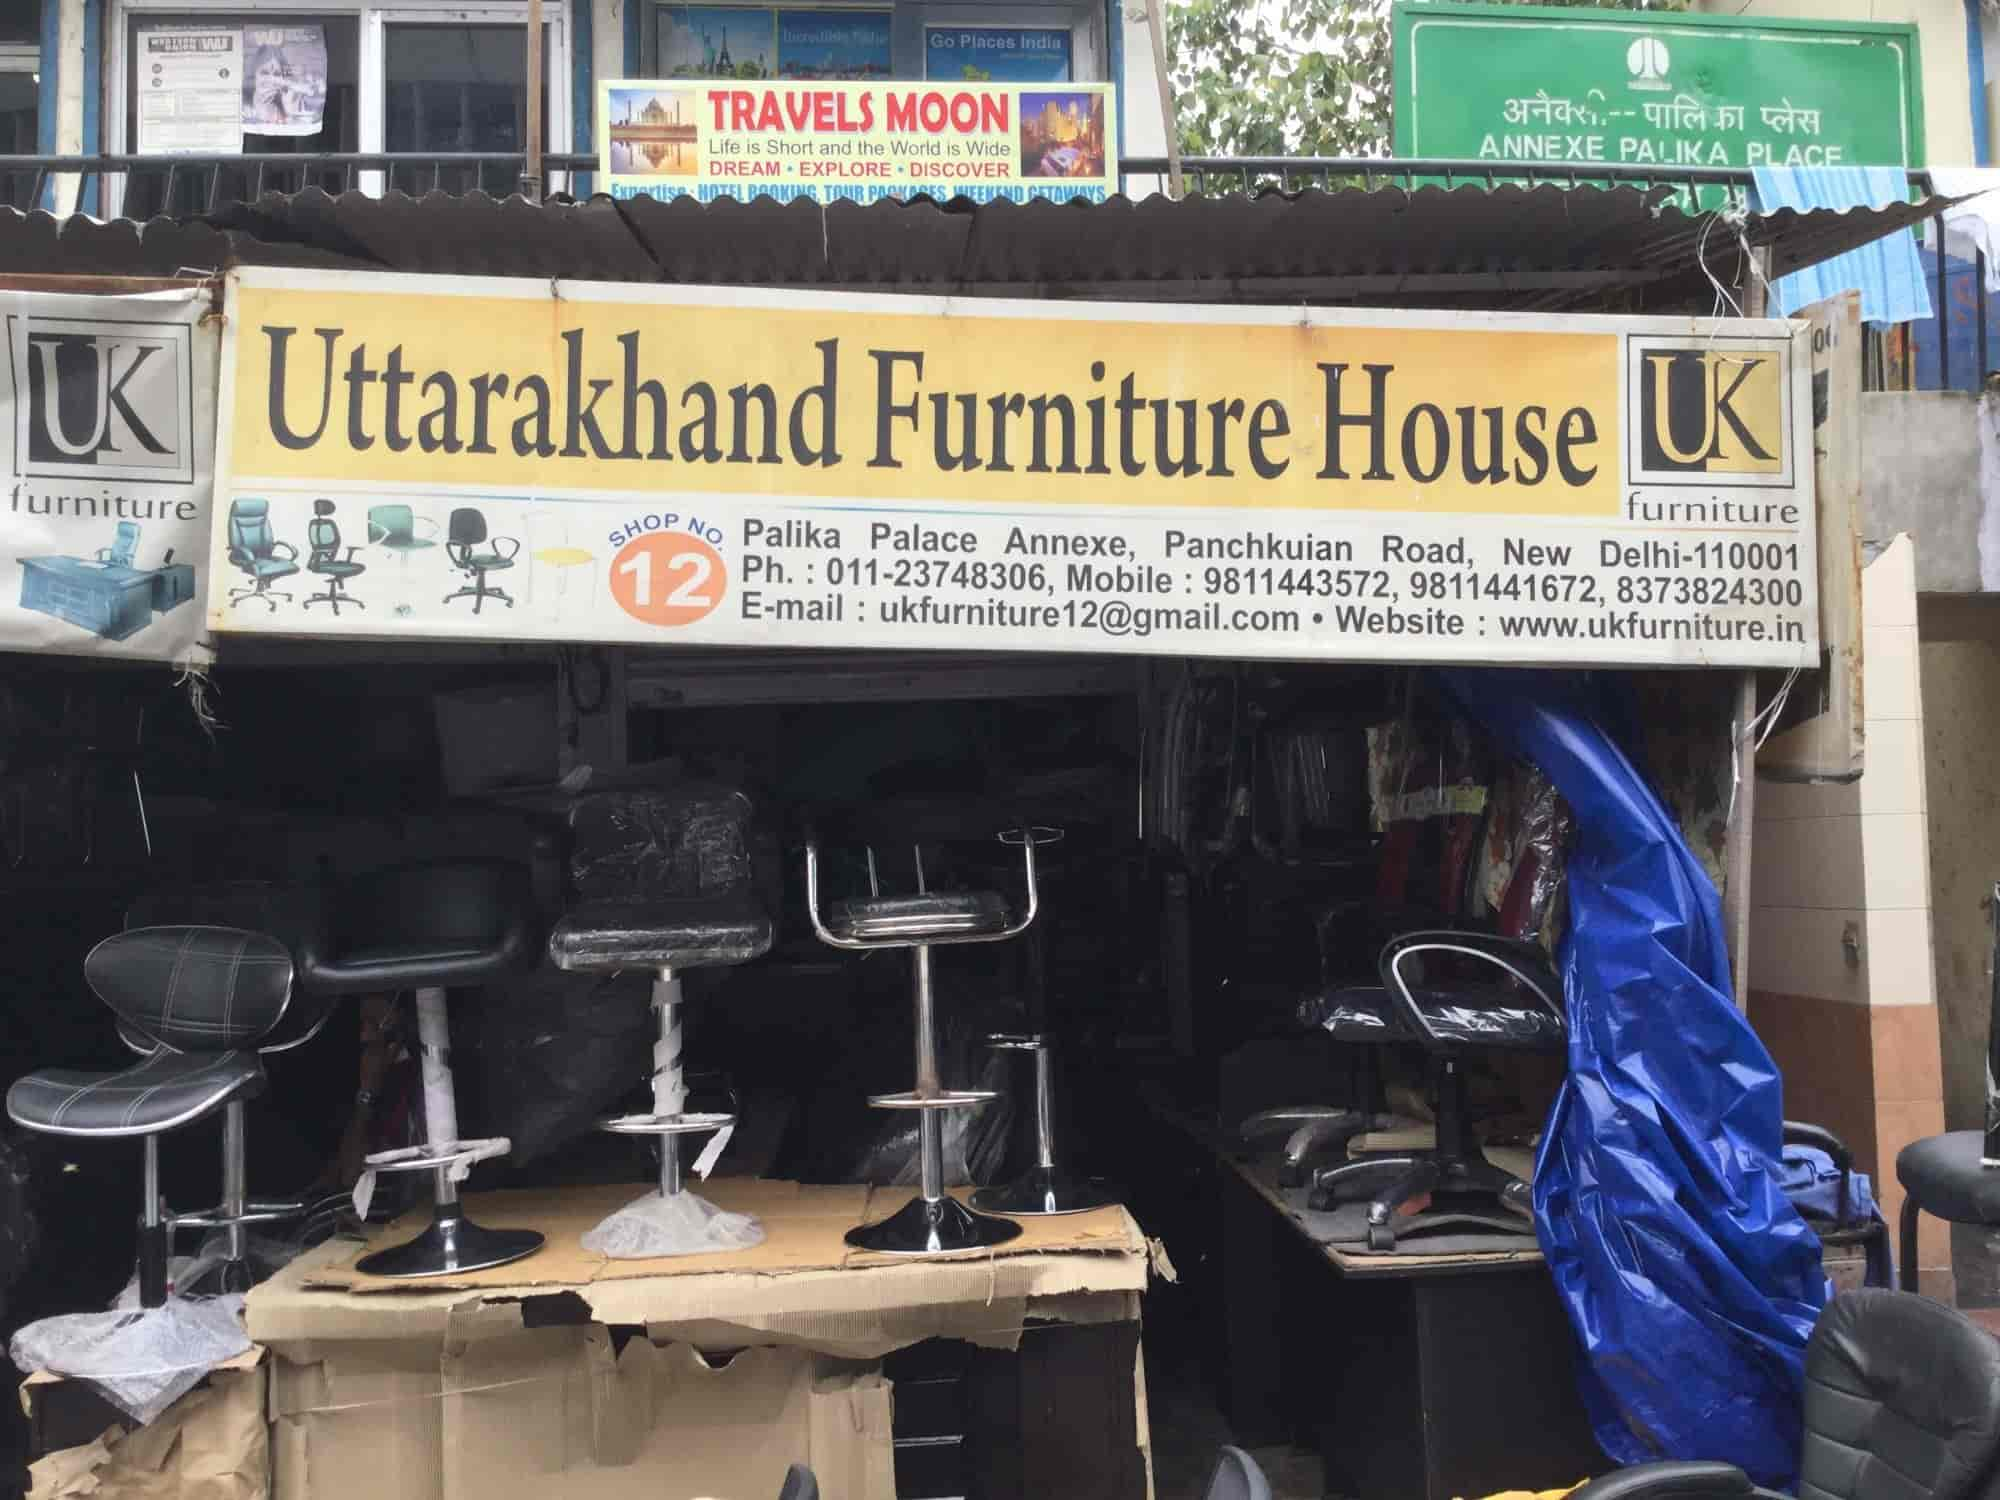 Uttarakhand Furniture House Connaught Place Furniture Dealers In